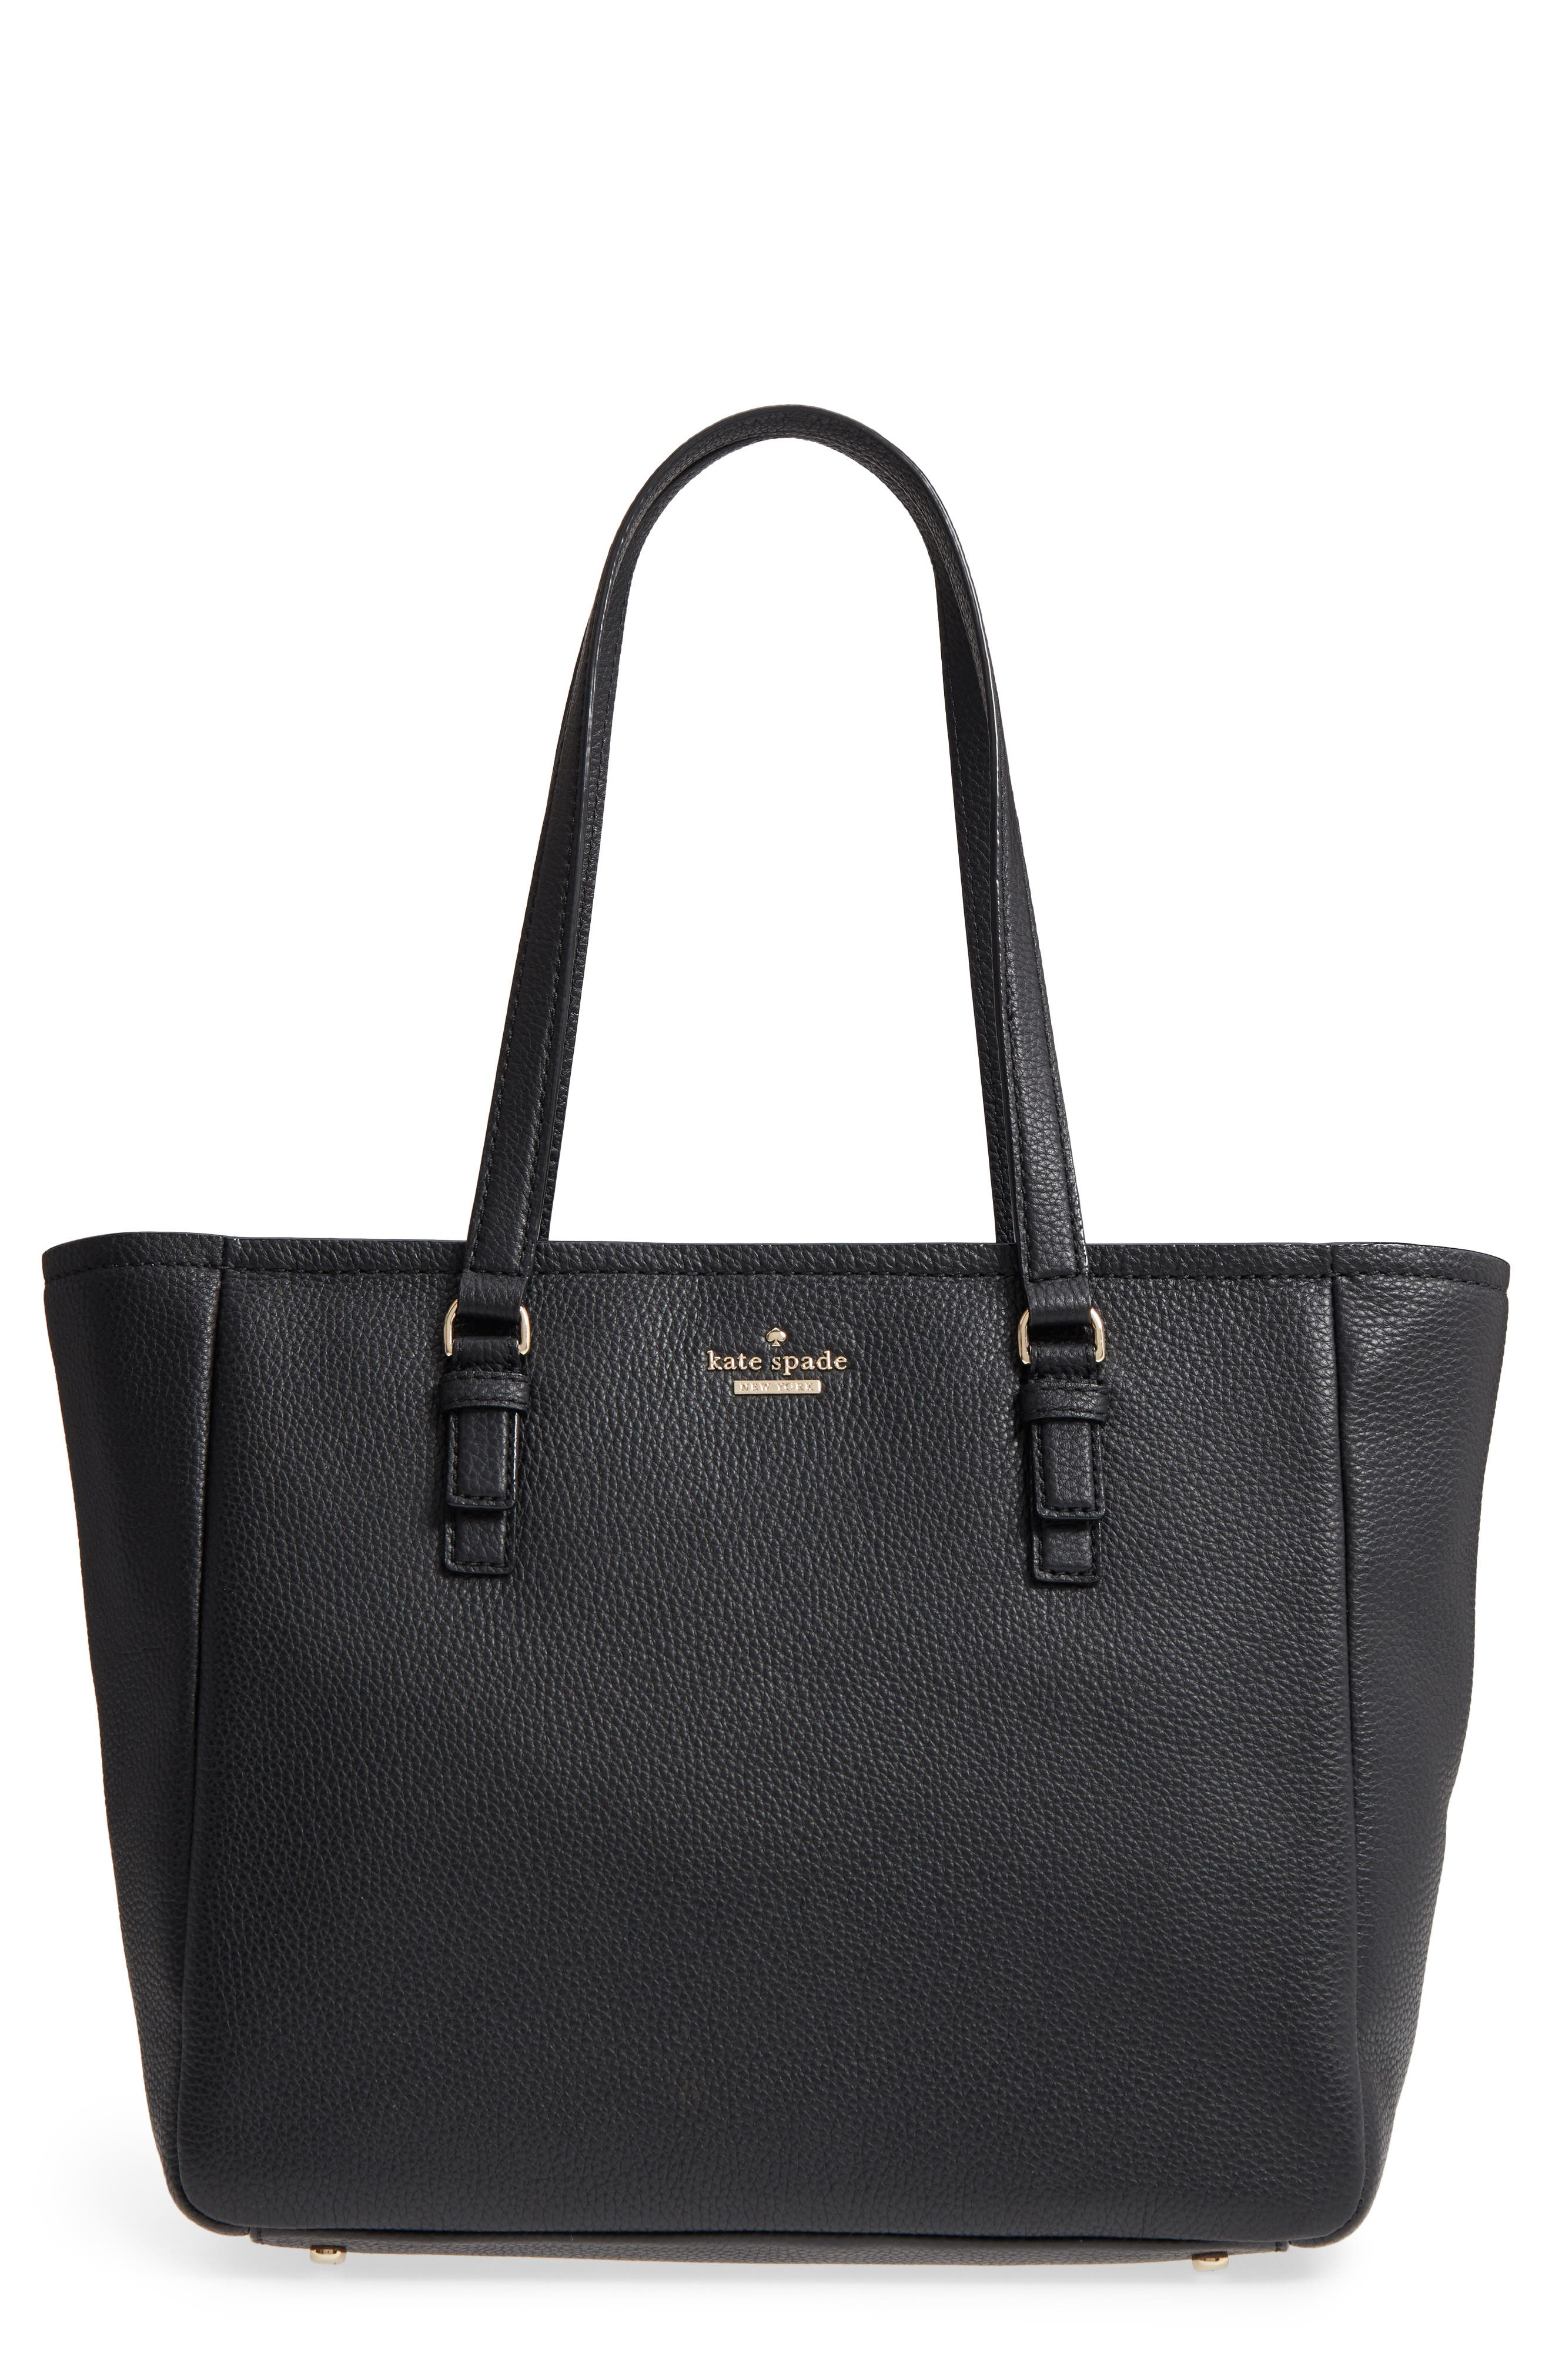 jackson street - denise leather tote,                         Main,                         color, 001